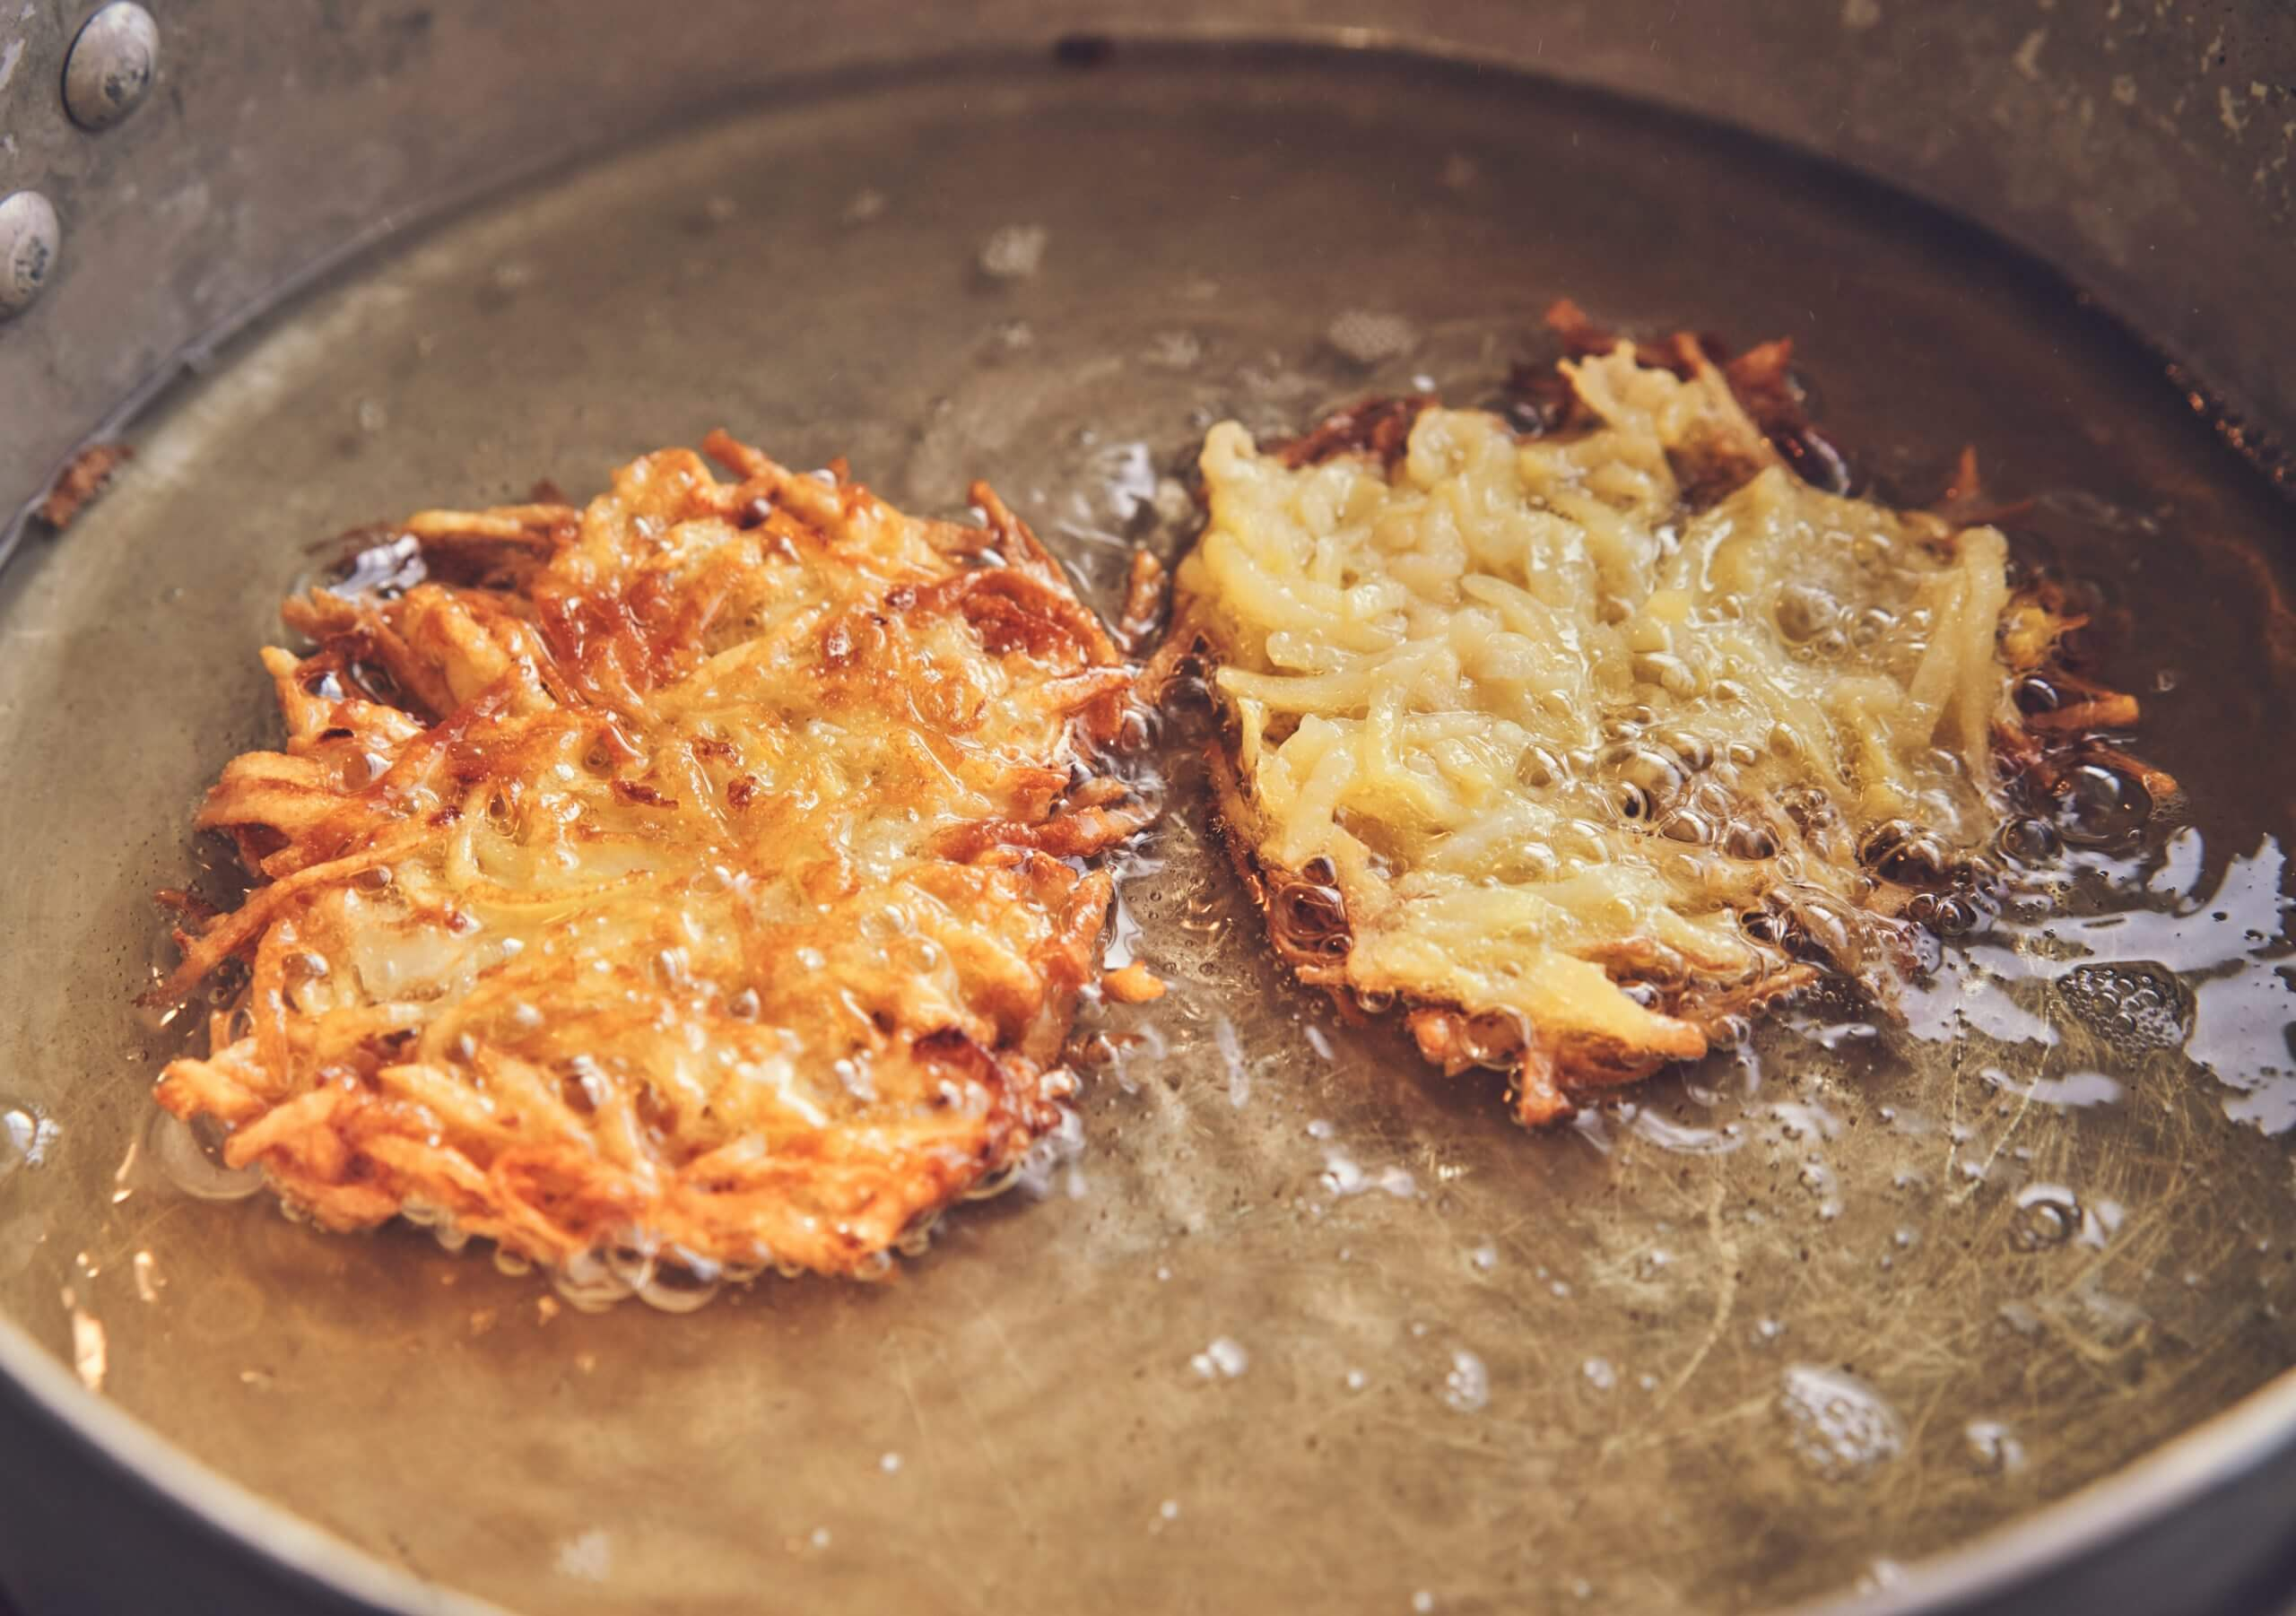 Two potato pancakes decadently frying in a pan of glistening oil.